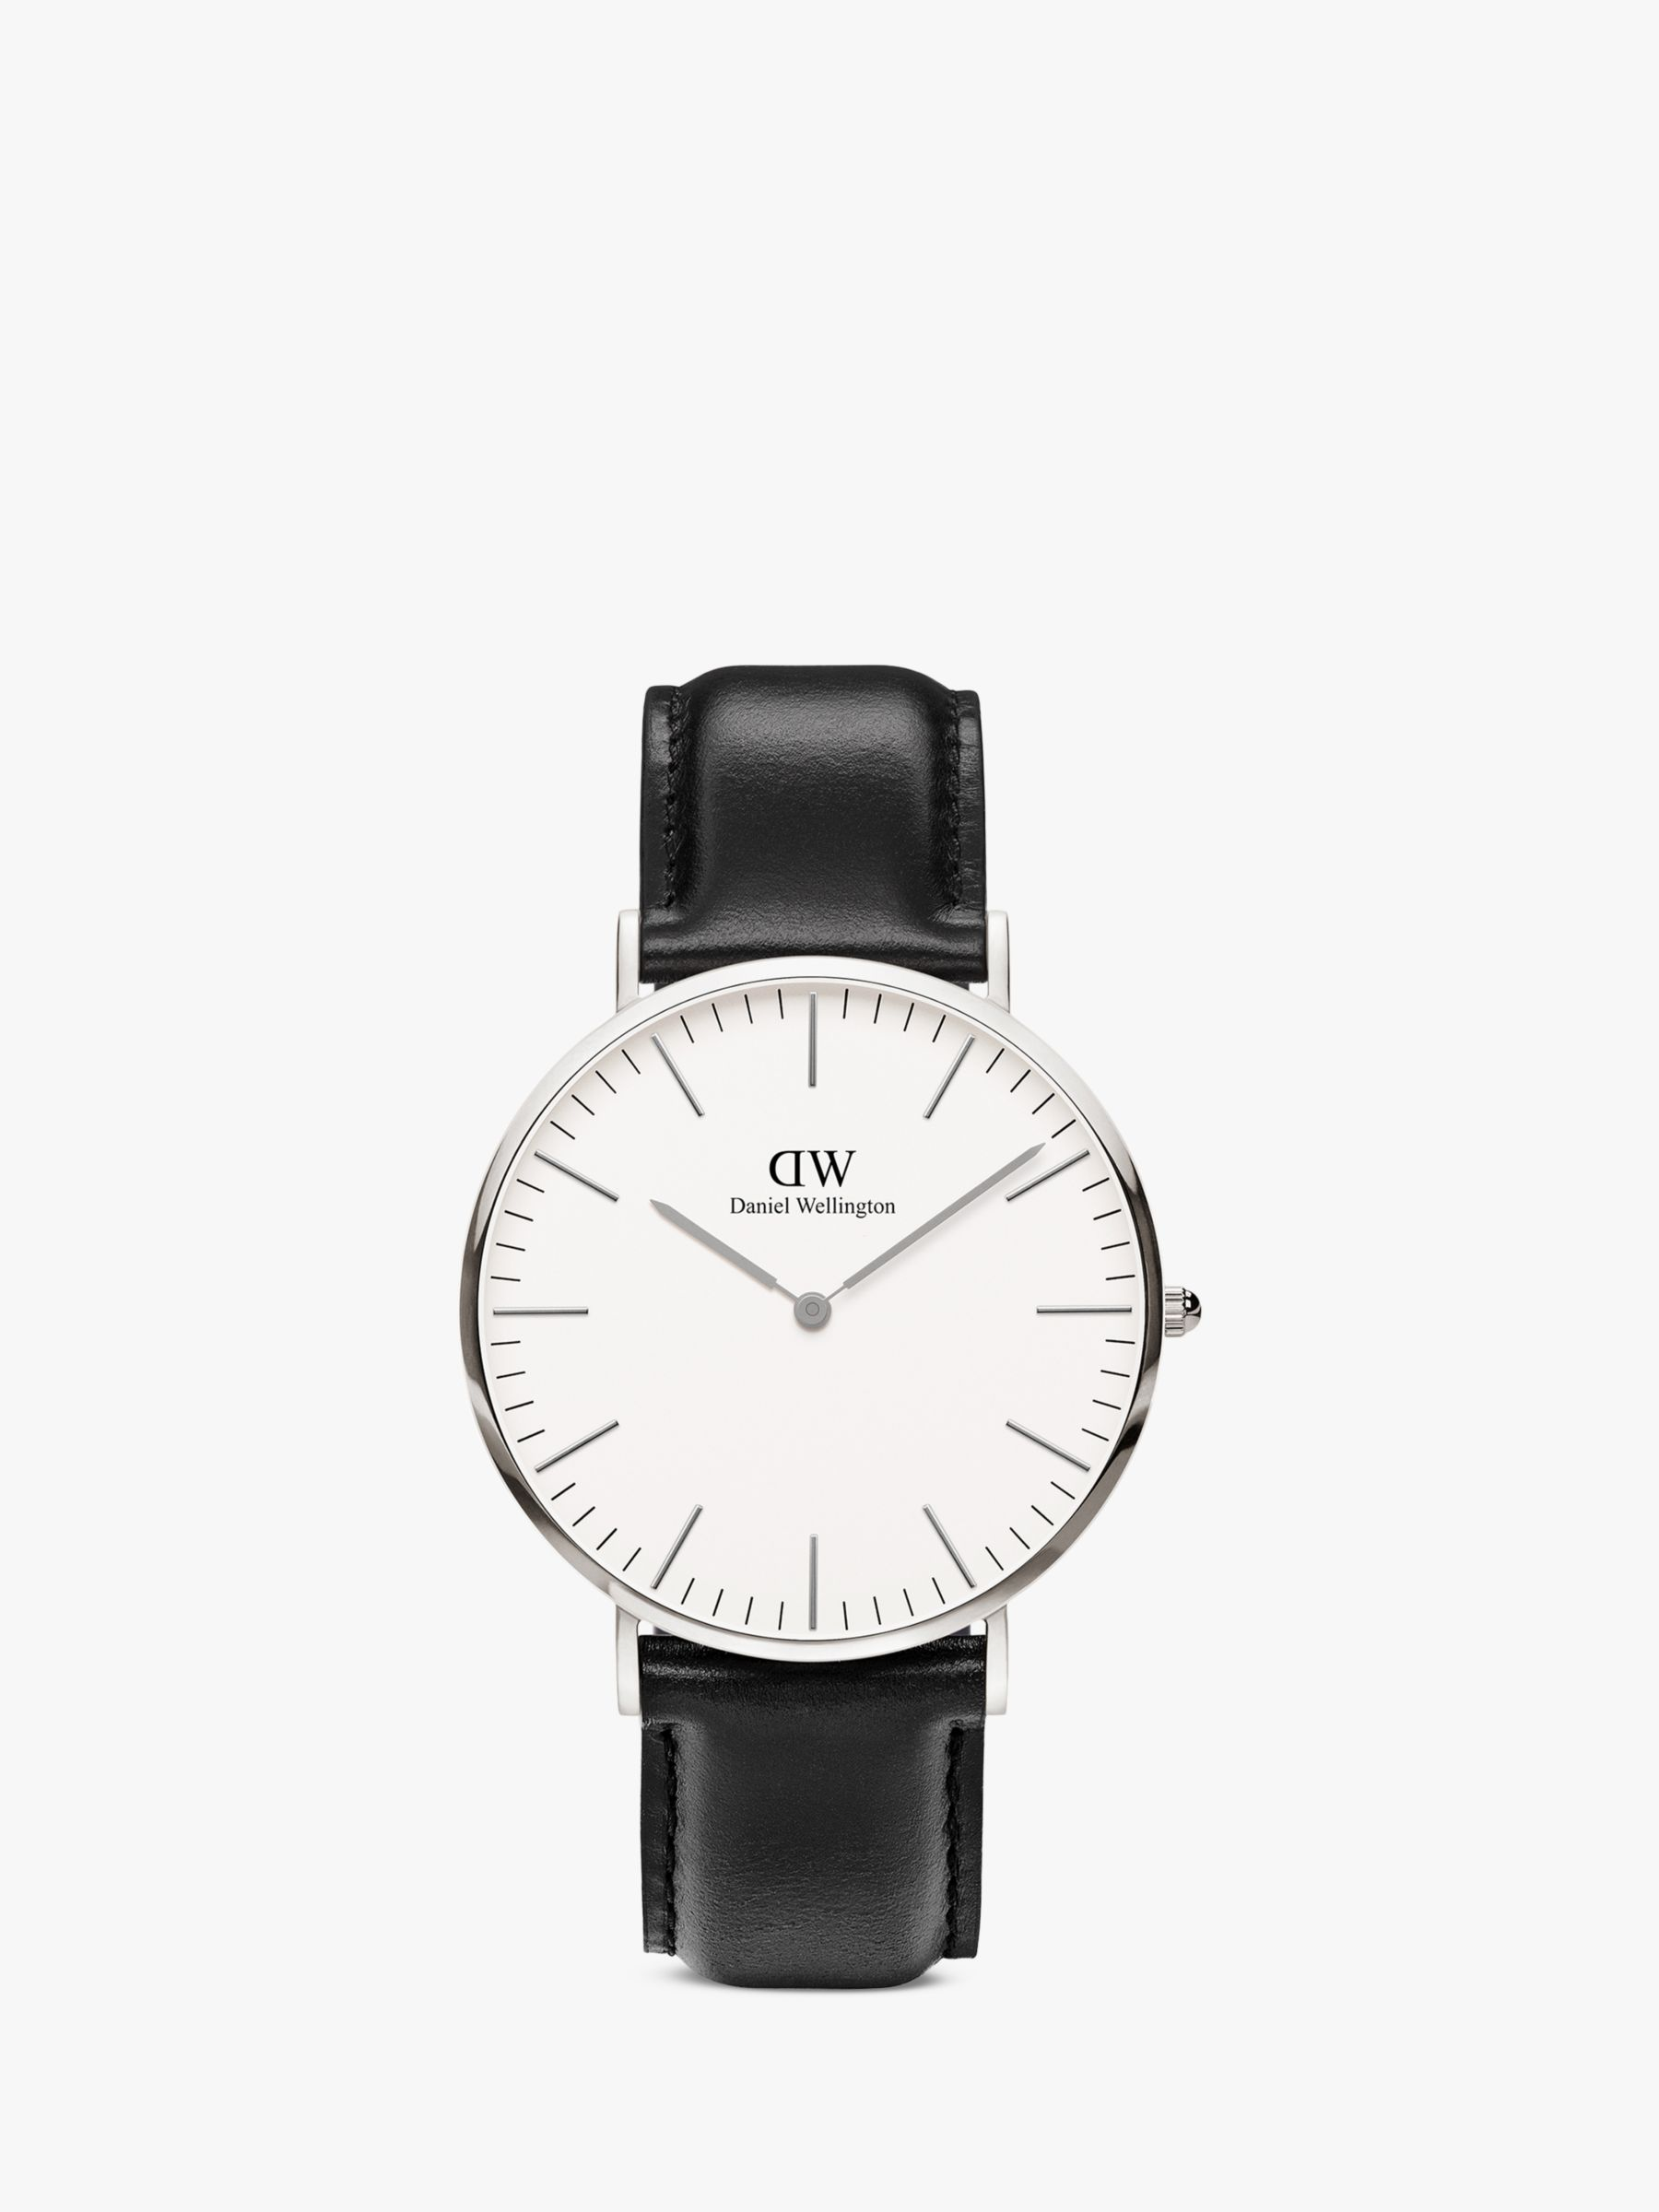 Daniel Wellington Daniel Wellington DW00100020 Men's 40mm Classic Sheffield Leather Strap Watch, Black/White